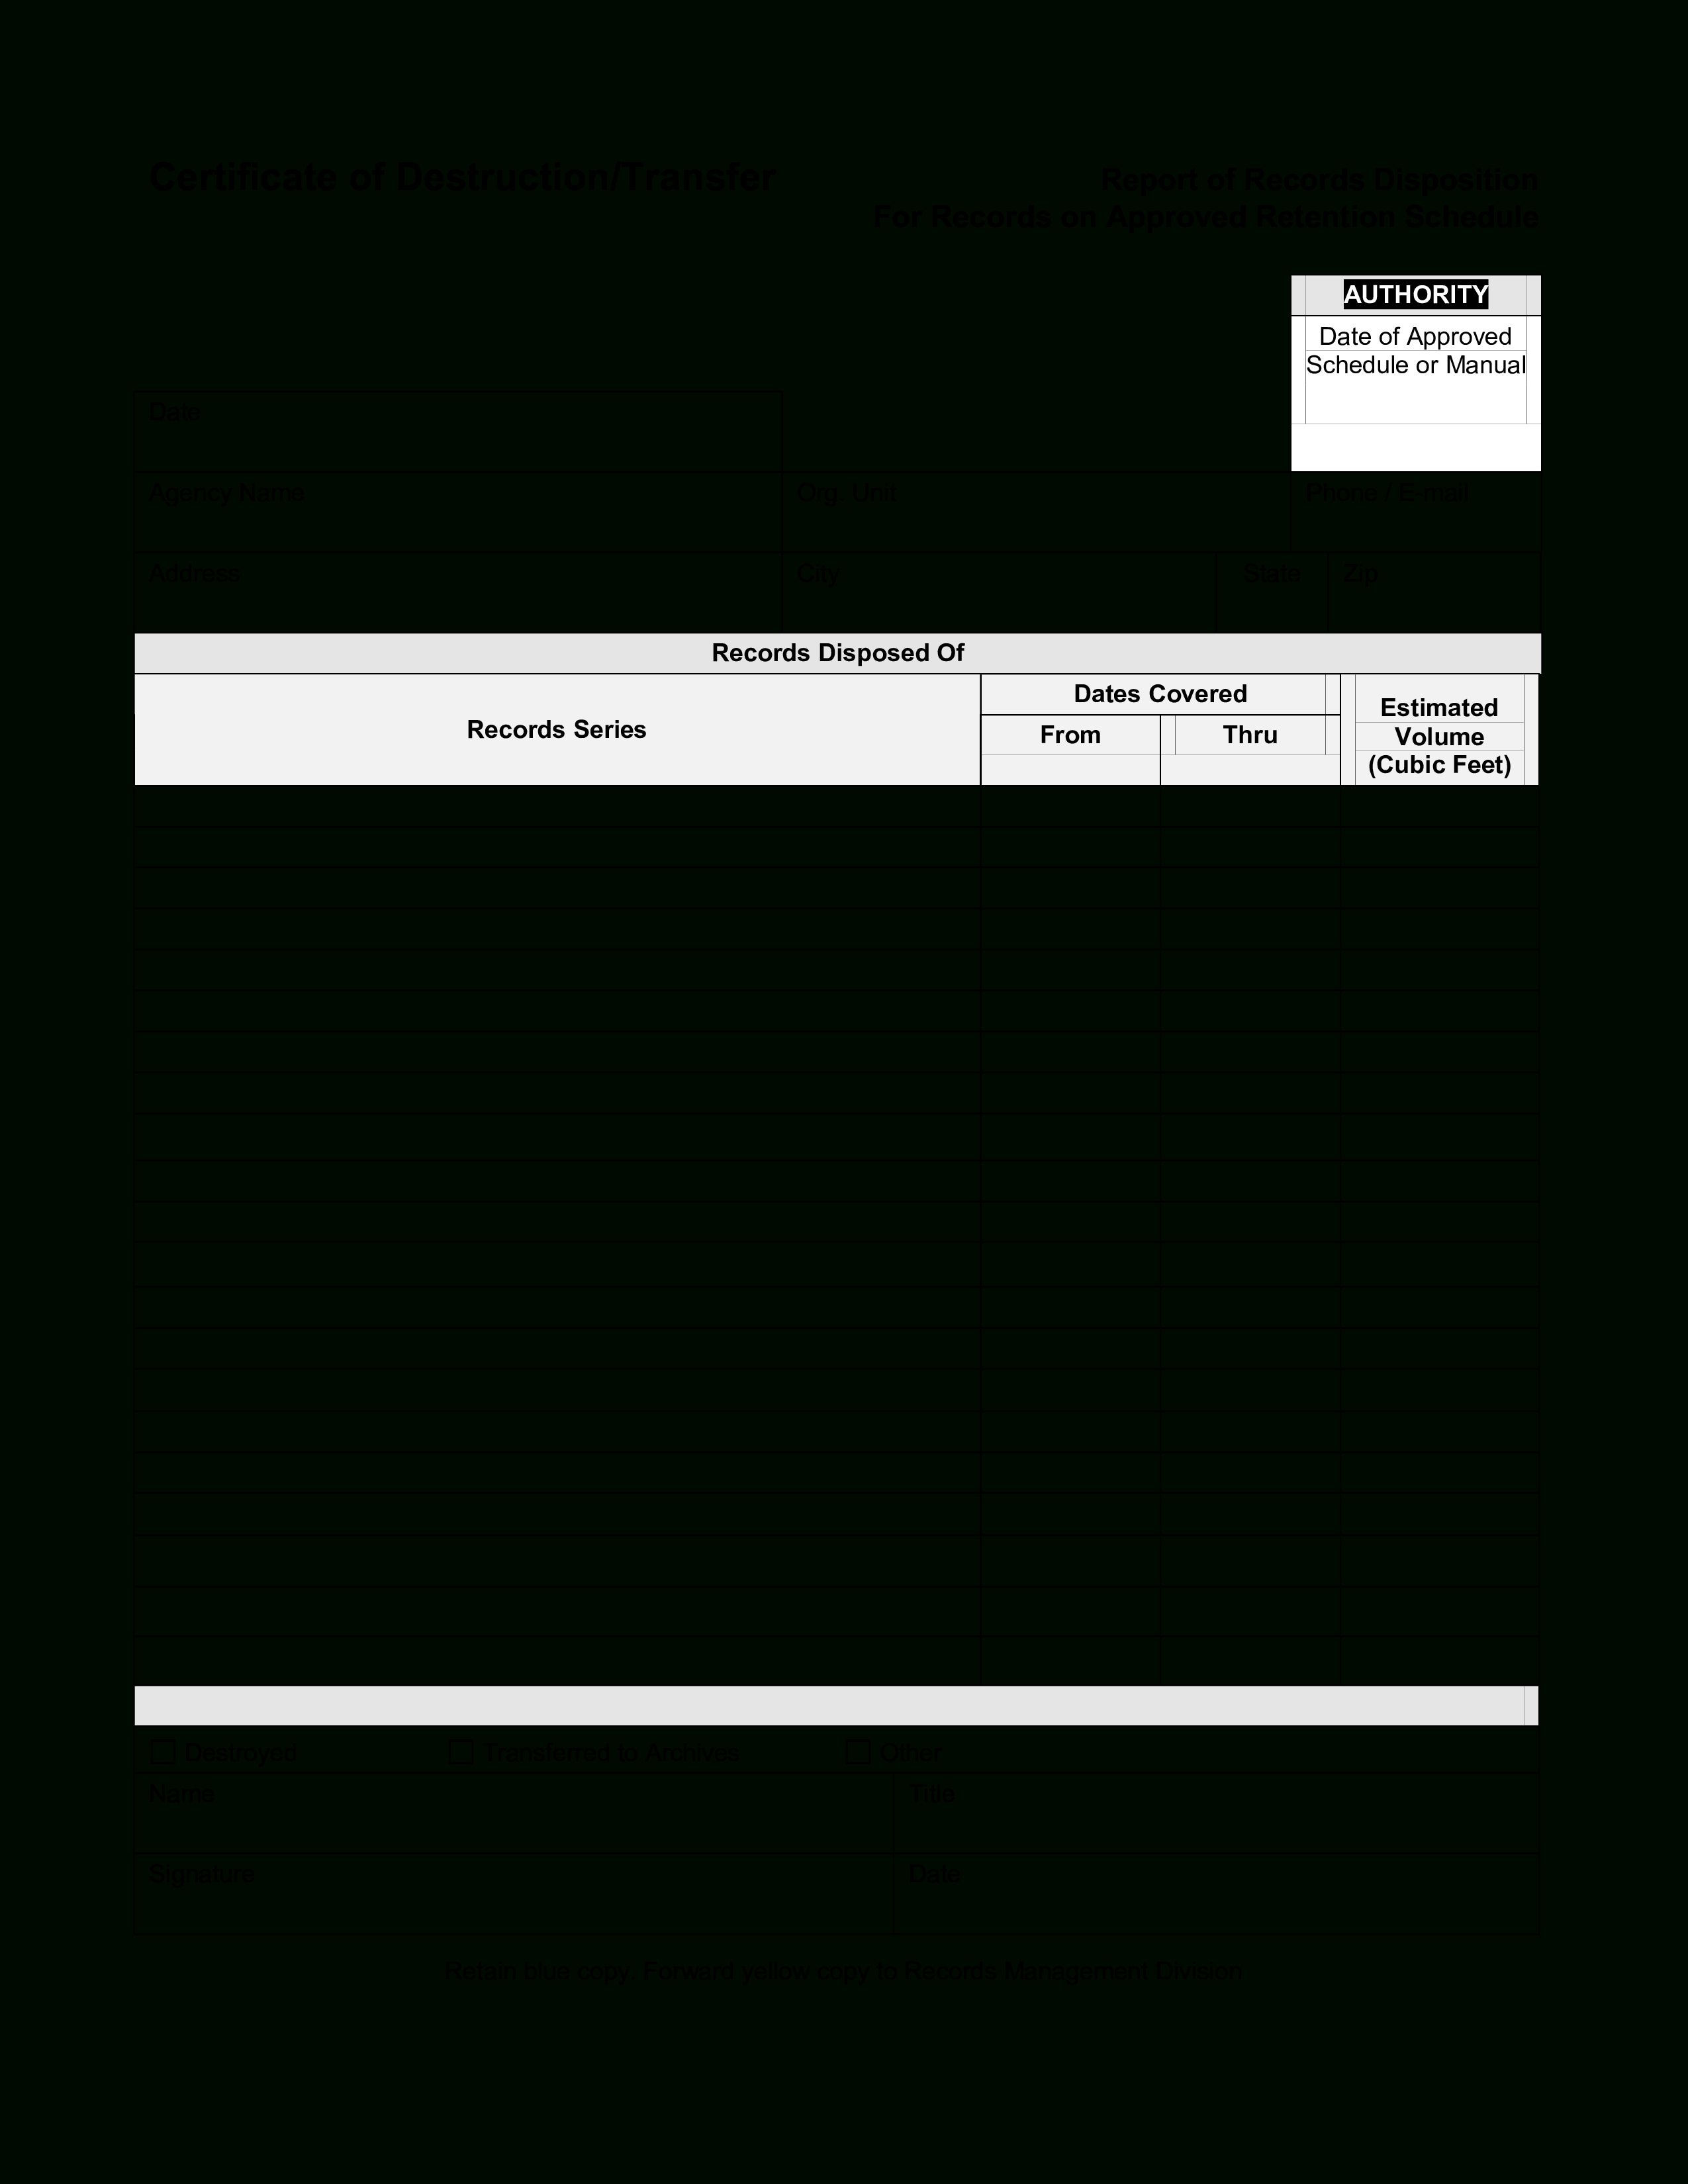 Blank Certificate Of Destruction  Templates At Allbusinesstemplates Throughout Free Certificate Of Destruction Template